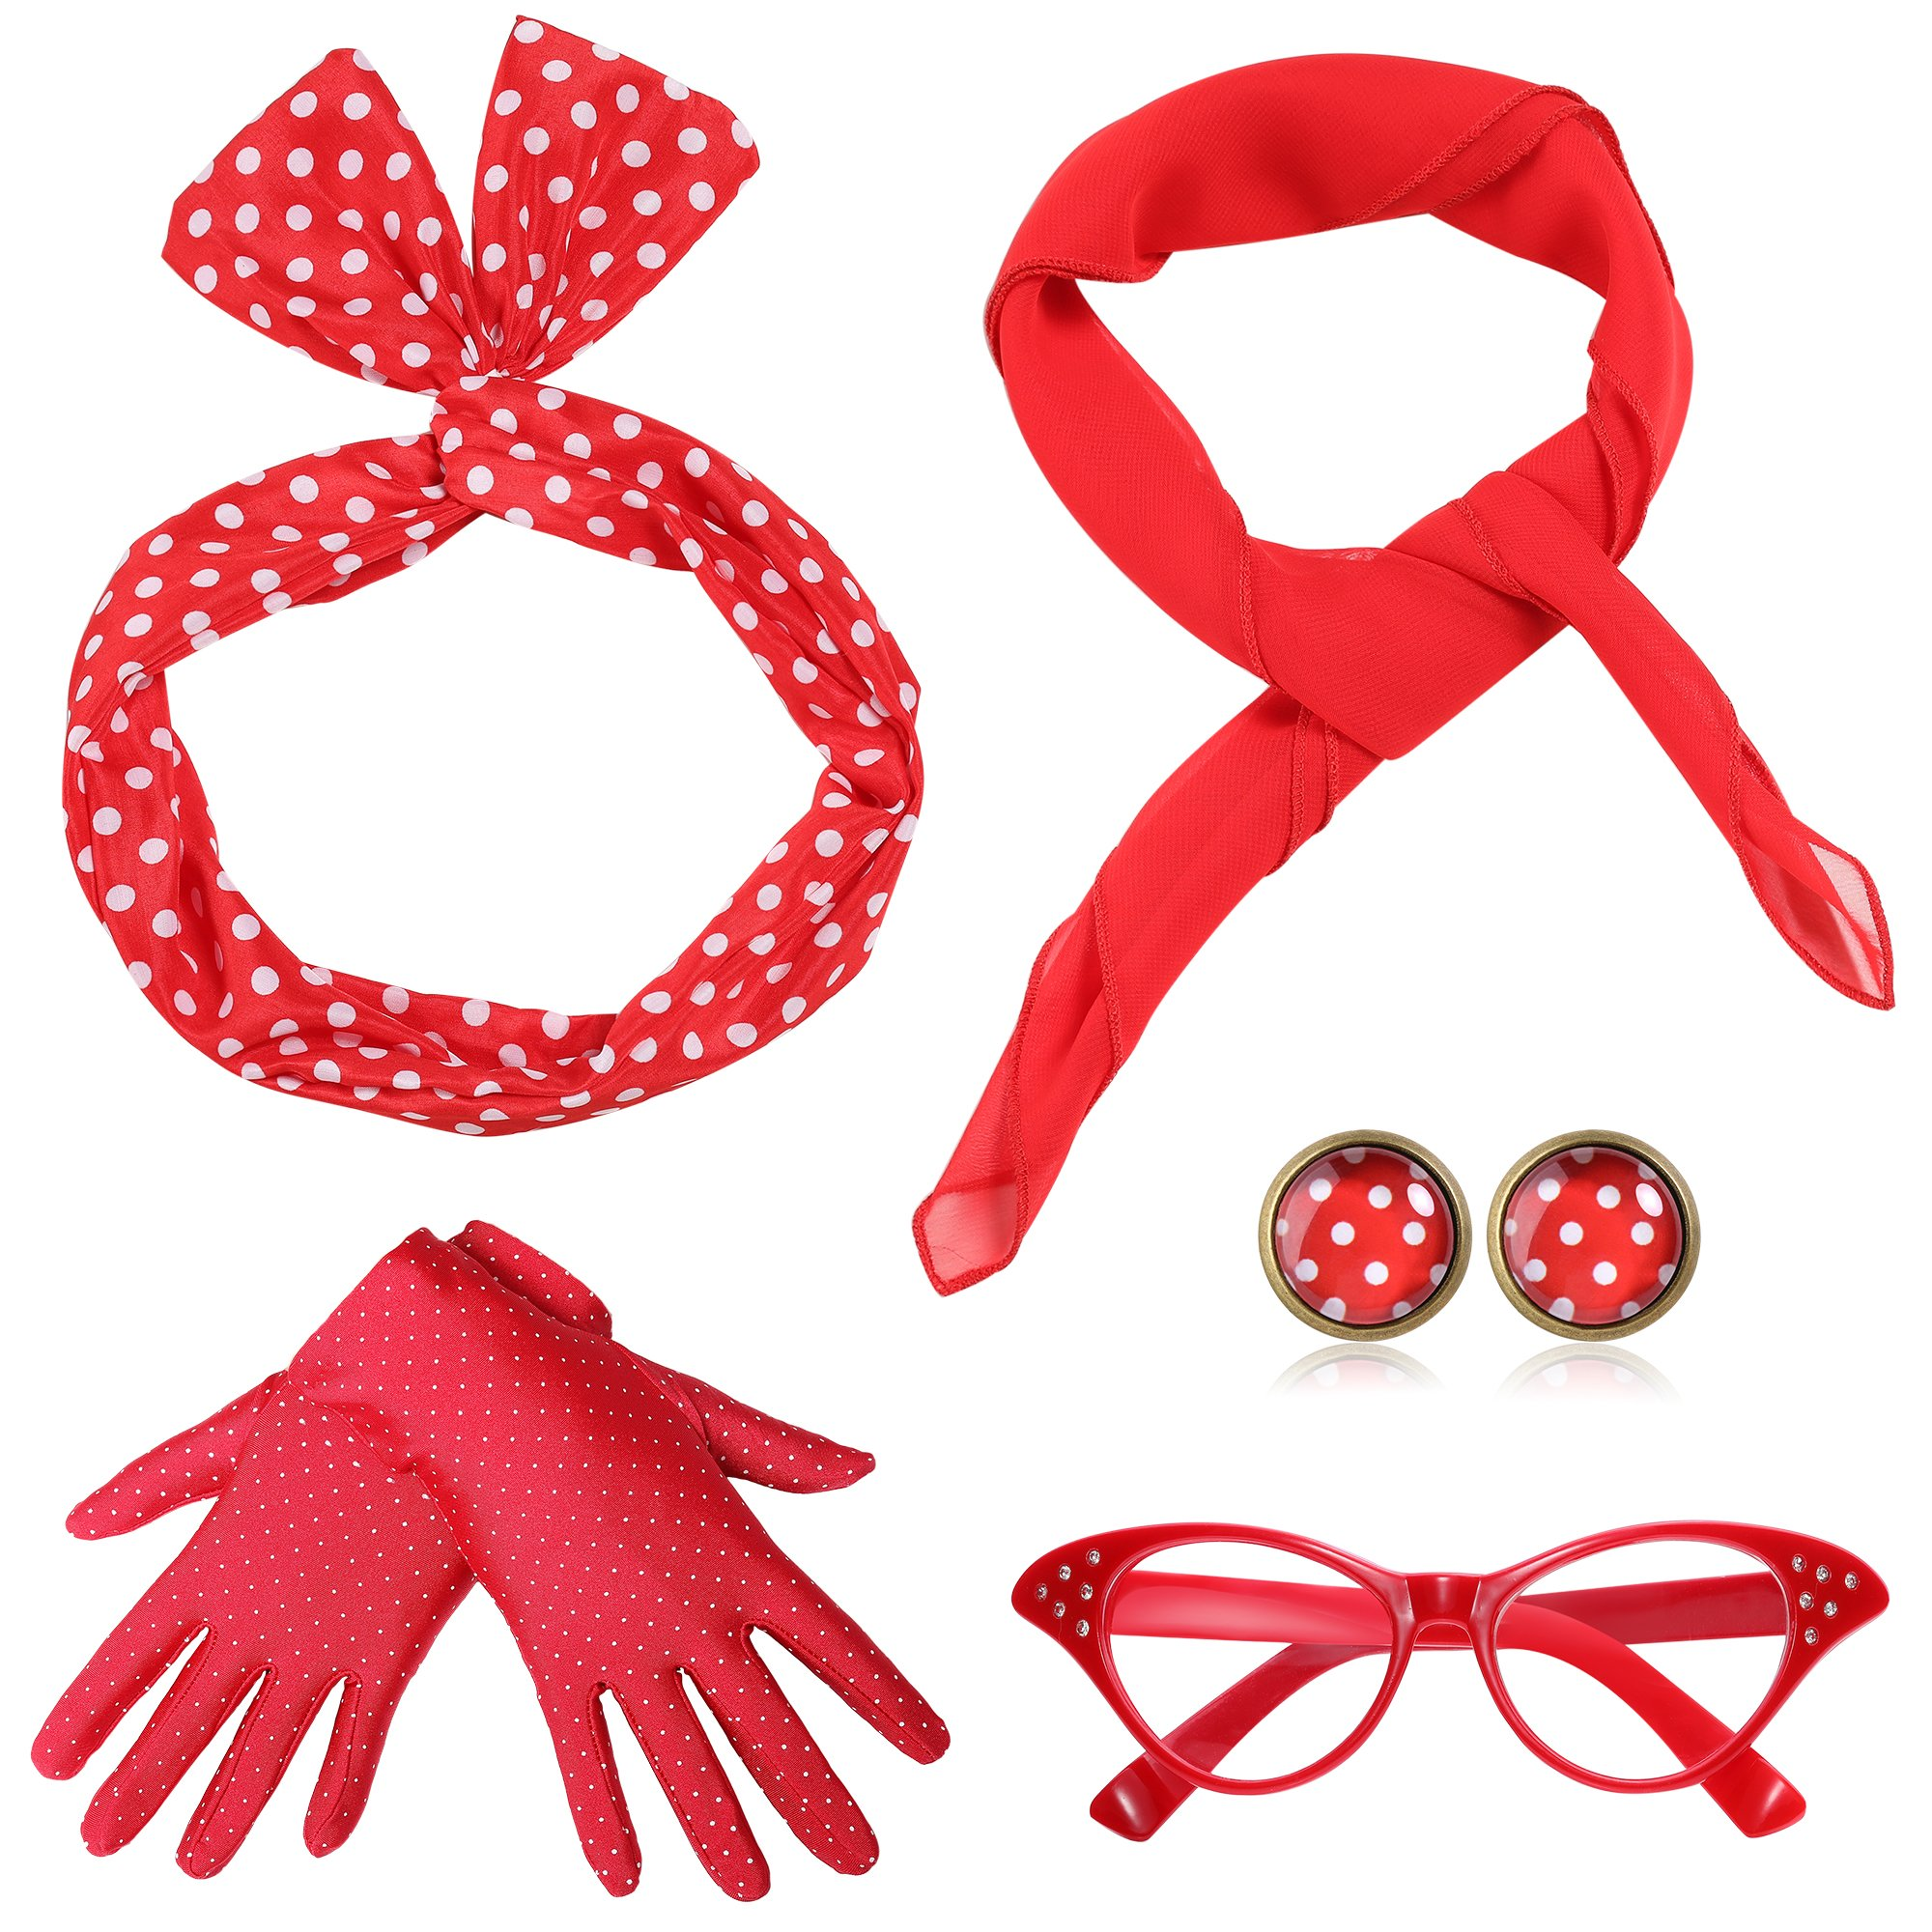 ArtiDeco 1950s Accessories Bandana Tie Headband Chiffon Scarf Cat Eye Glasses 50s Earrings and Gloves 50s Costume Accessories (Red)